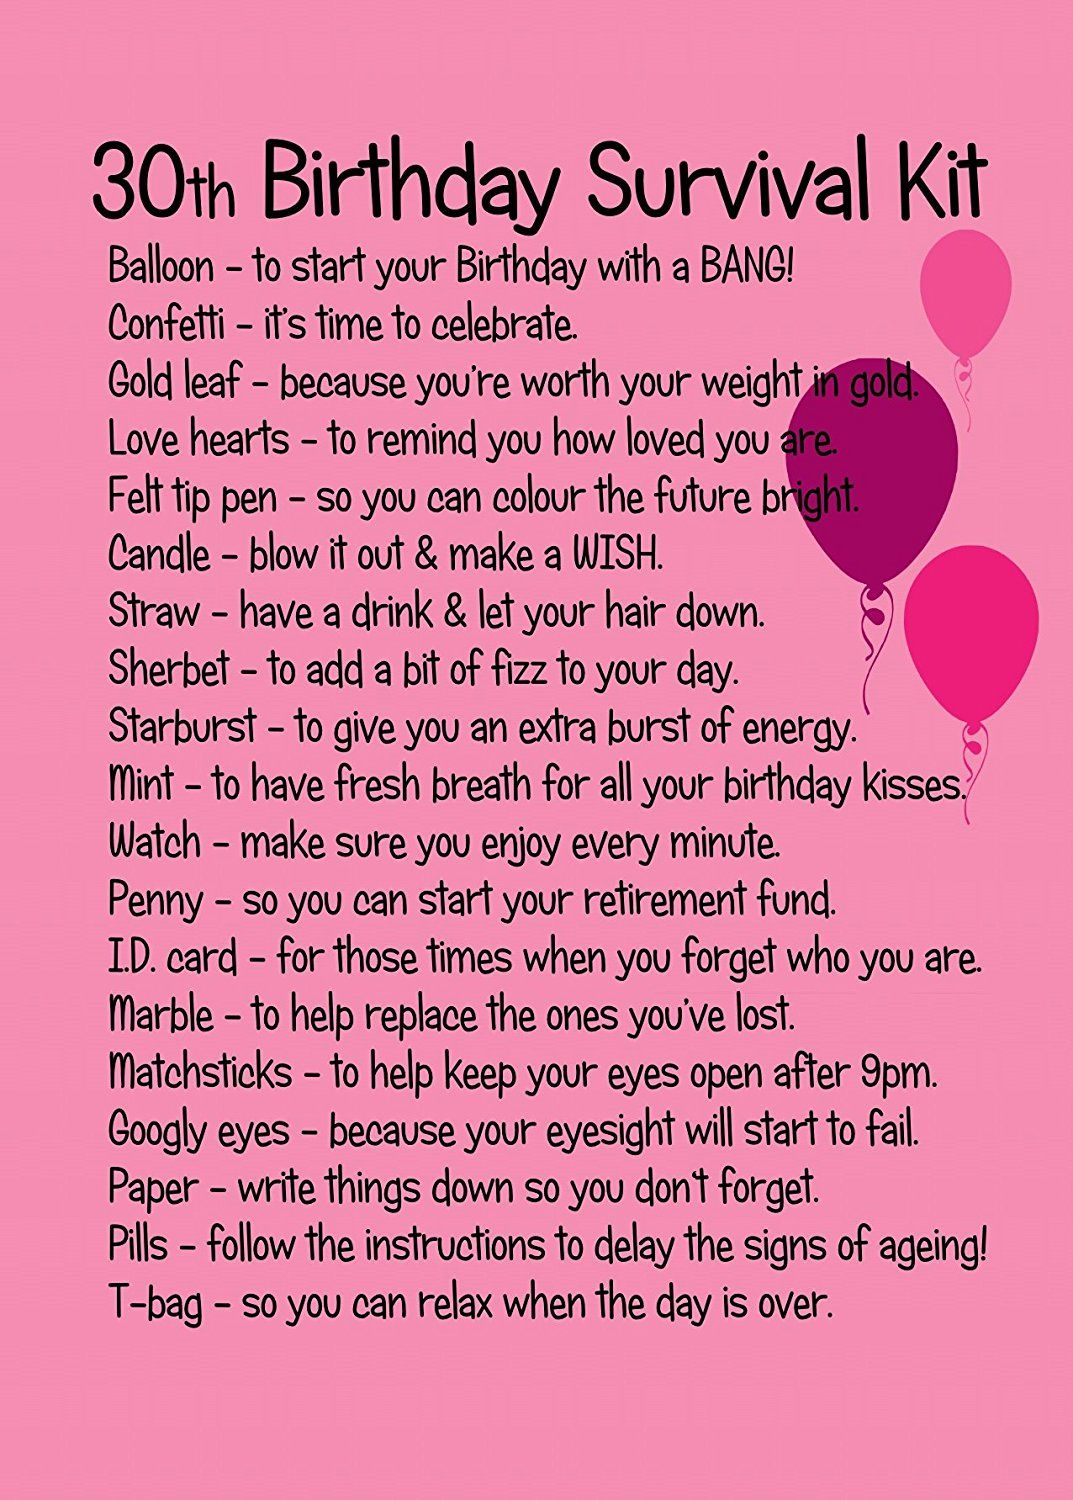 30th Birthday Survival Kit Pink Birthday Pinterest